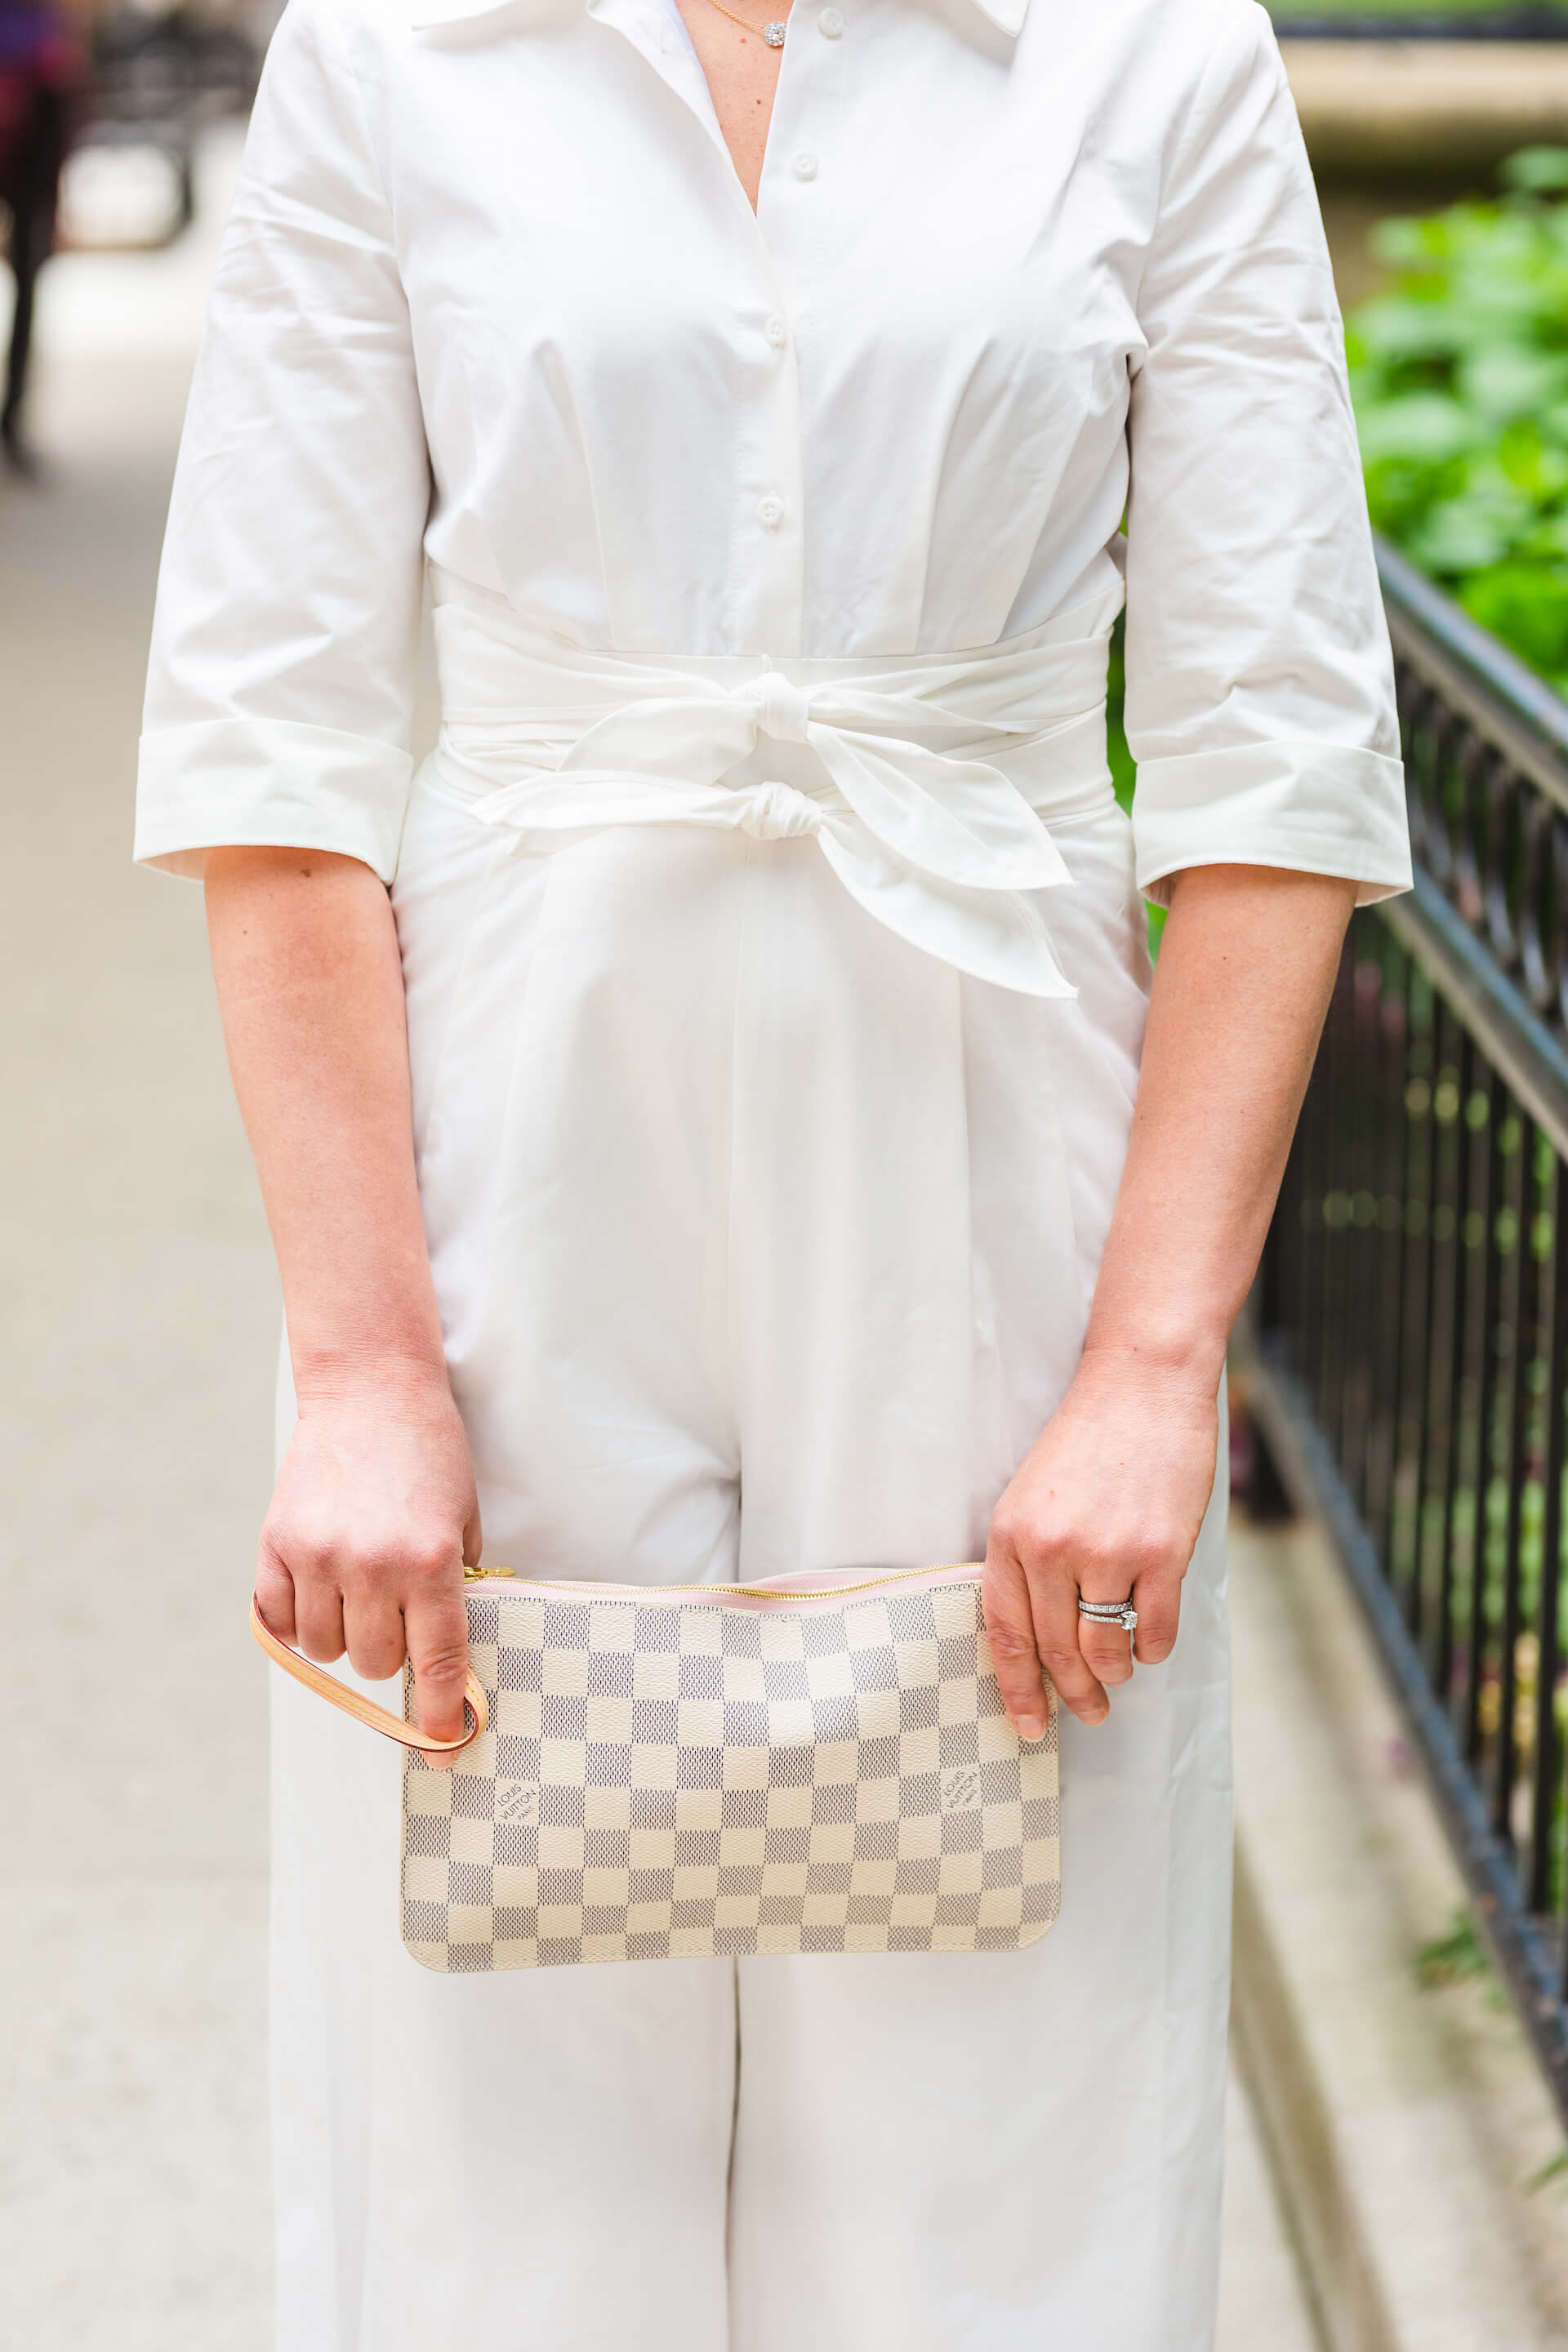 GMG White Jumpsuit Kingston Earrings LV Clutch Tory Burch Sandals Look by Modnitsa Styling